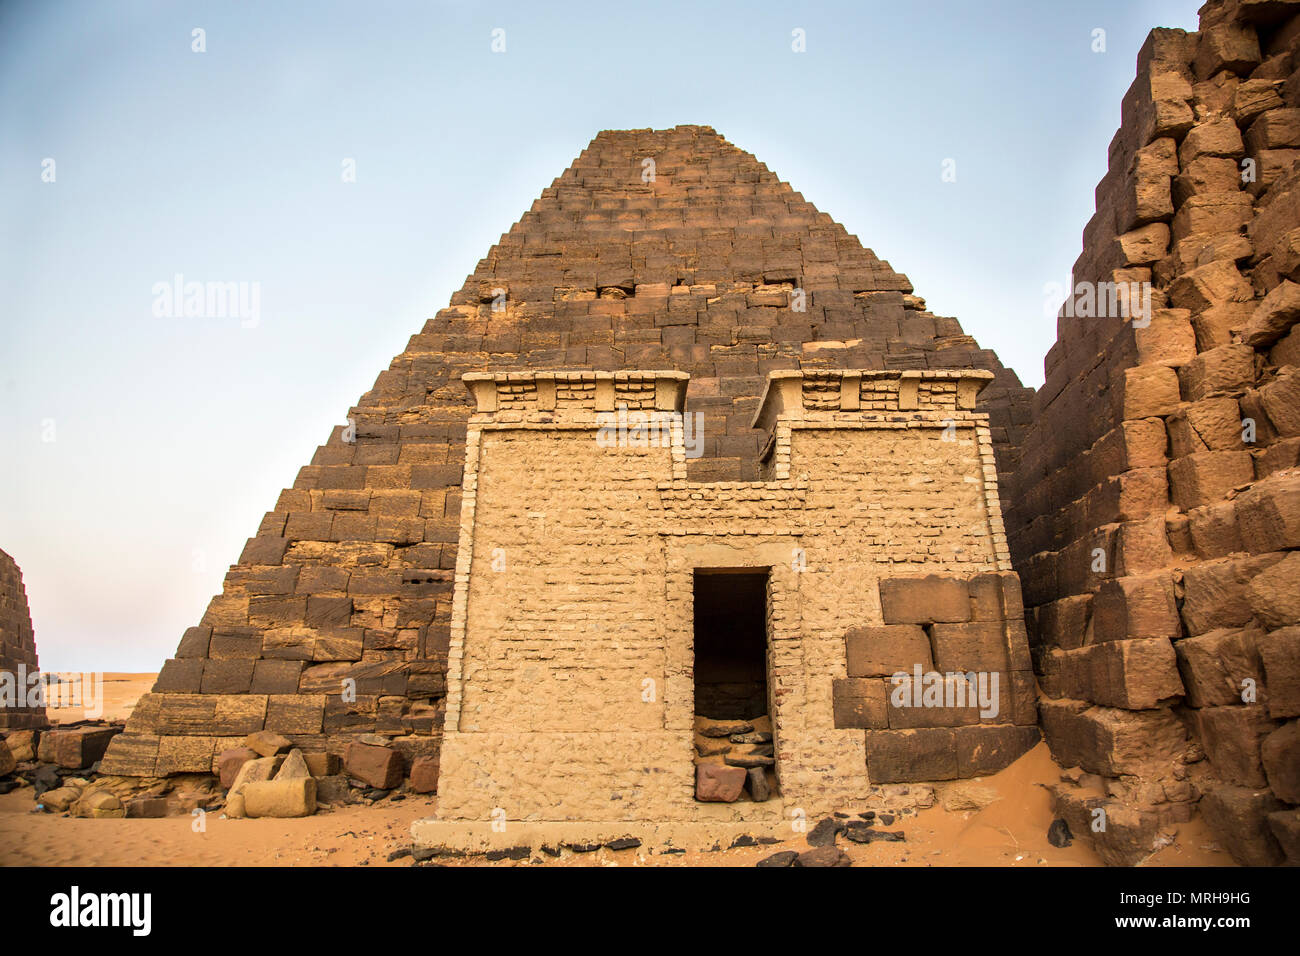 ancient Meroe pyramids in a desert in Sudan - Stock Image